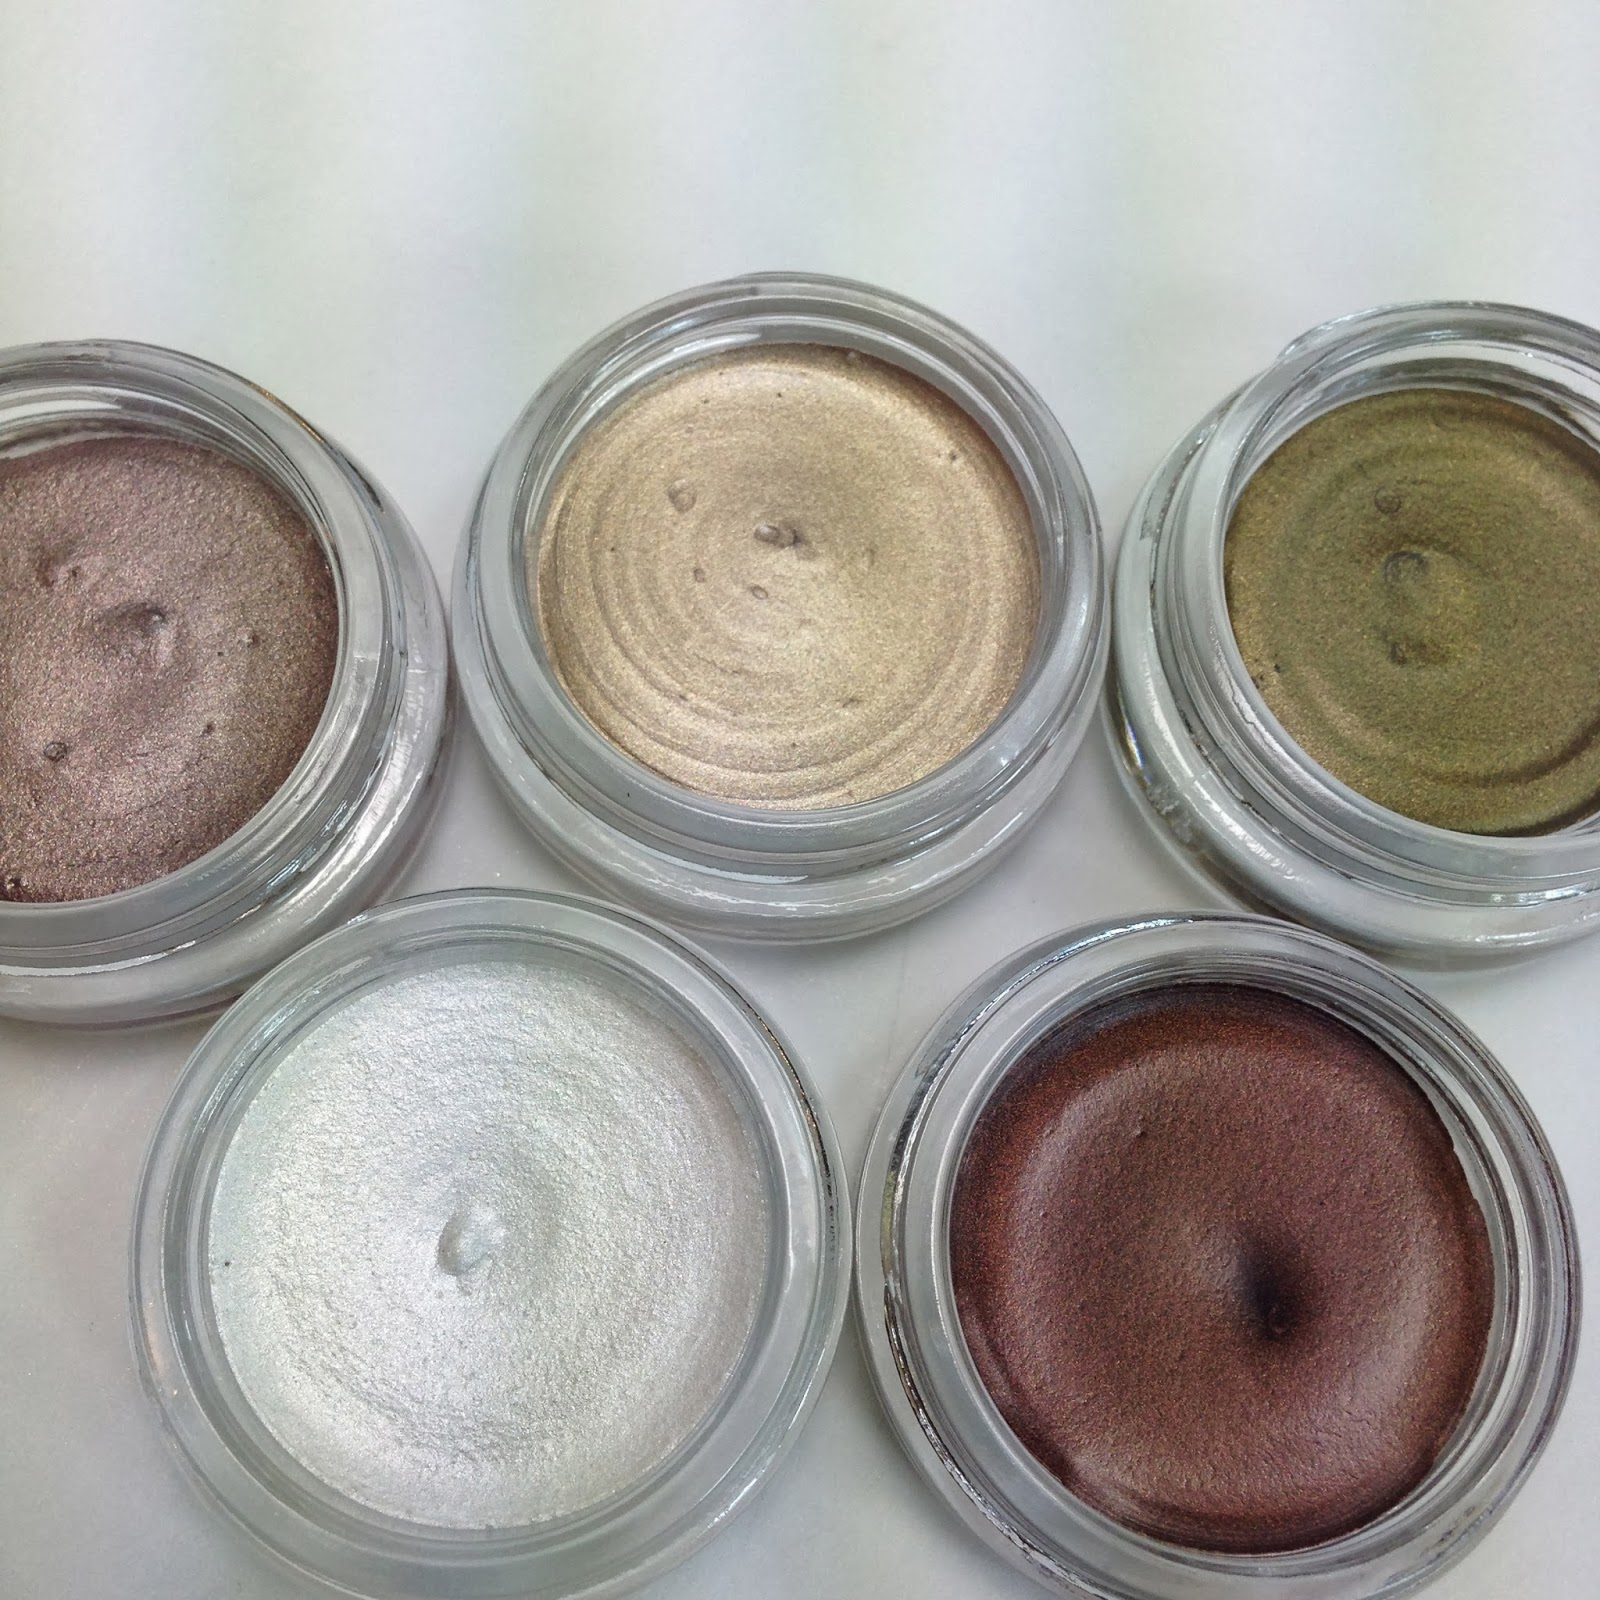 ULTA BEAUTY. This creamy Ulta Cream Eyeshadow combines a unique blend of ingredients to create a crease-proof, fast-drying, richly textured formula that glides over lids releasing intense color withou.